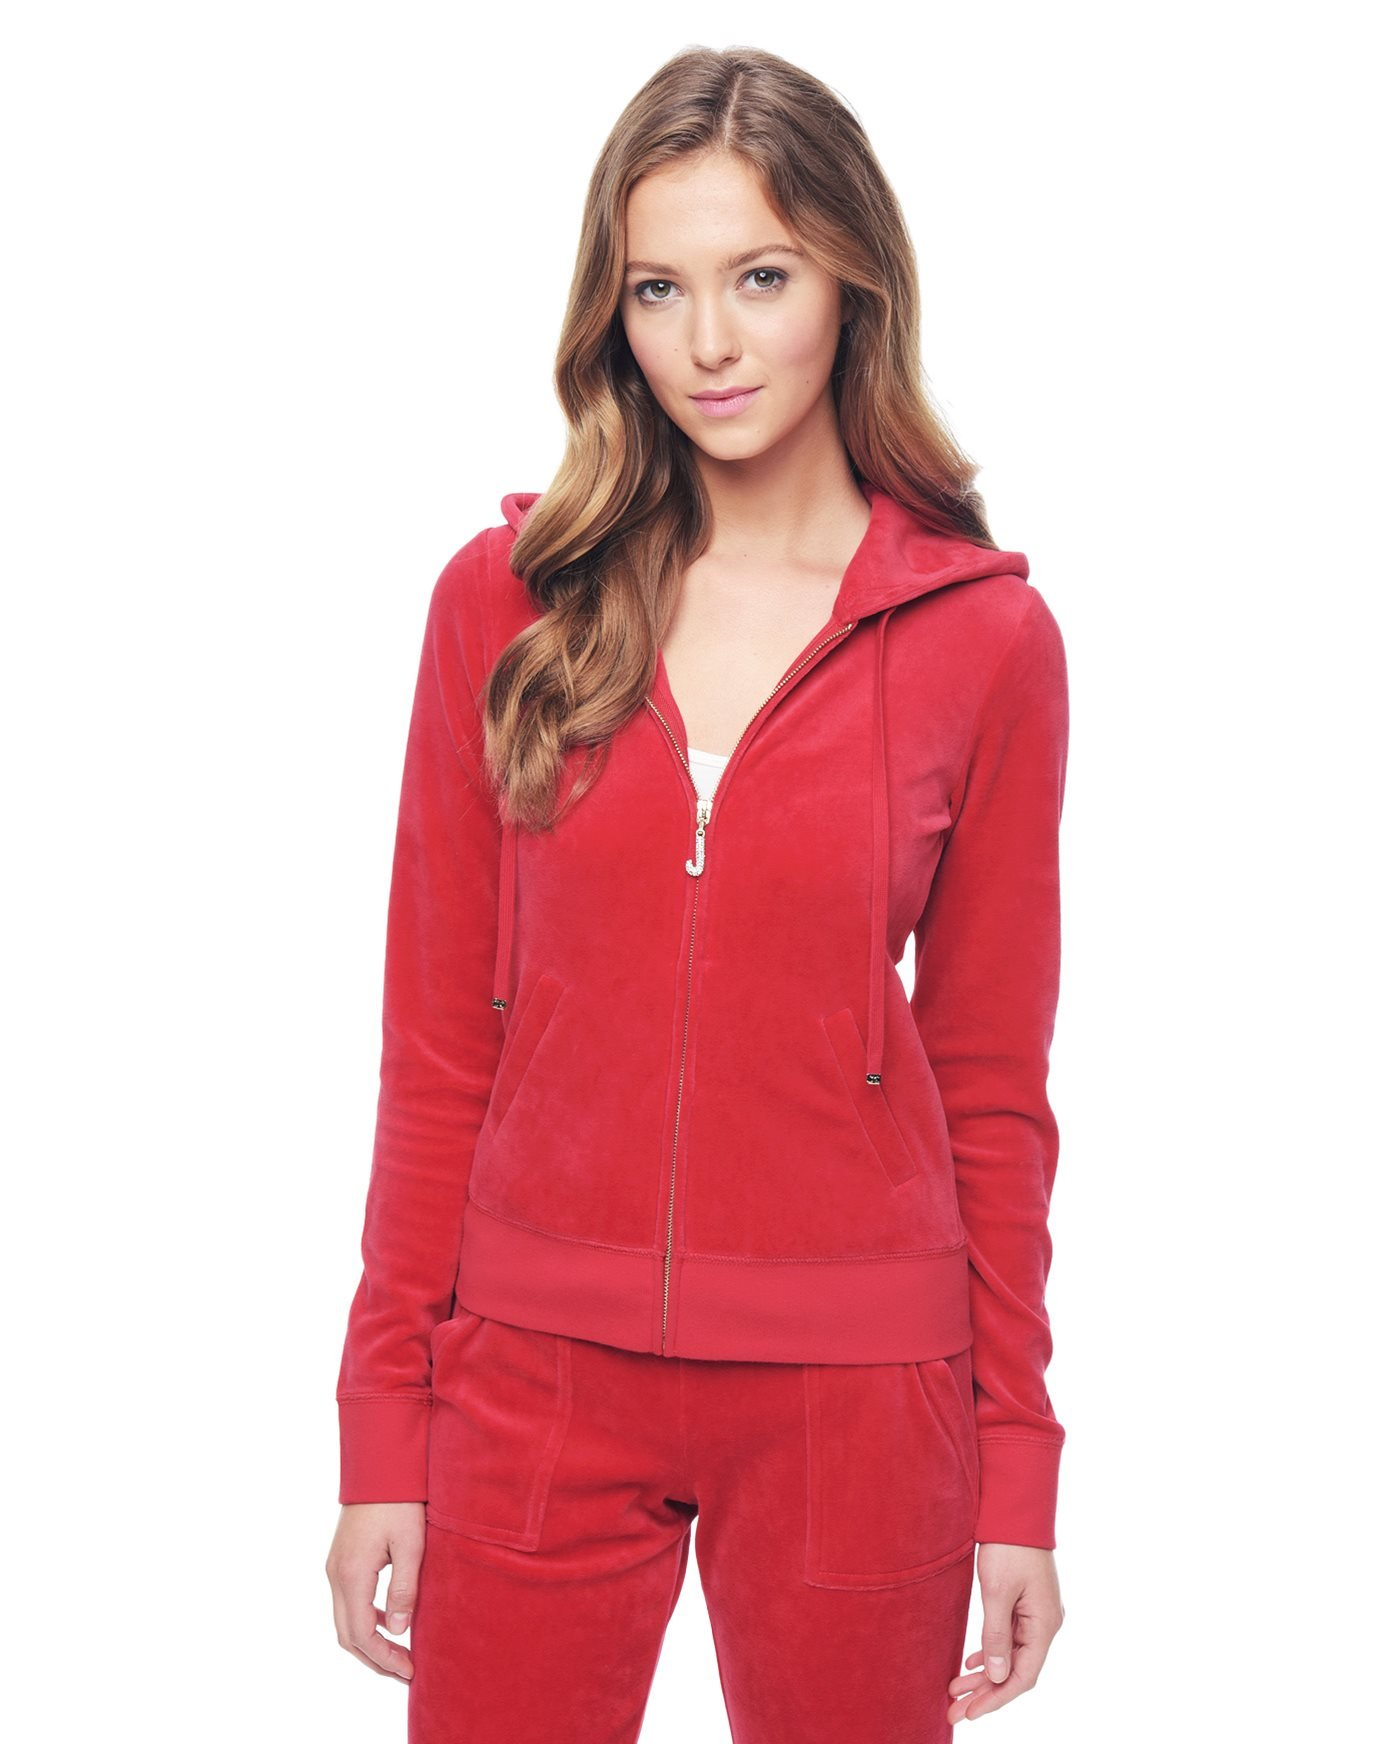 Juicy Couture Women's J Bling Hoodie (X-Large, Poppy)